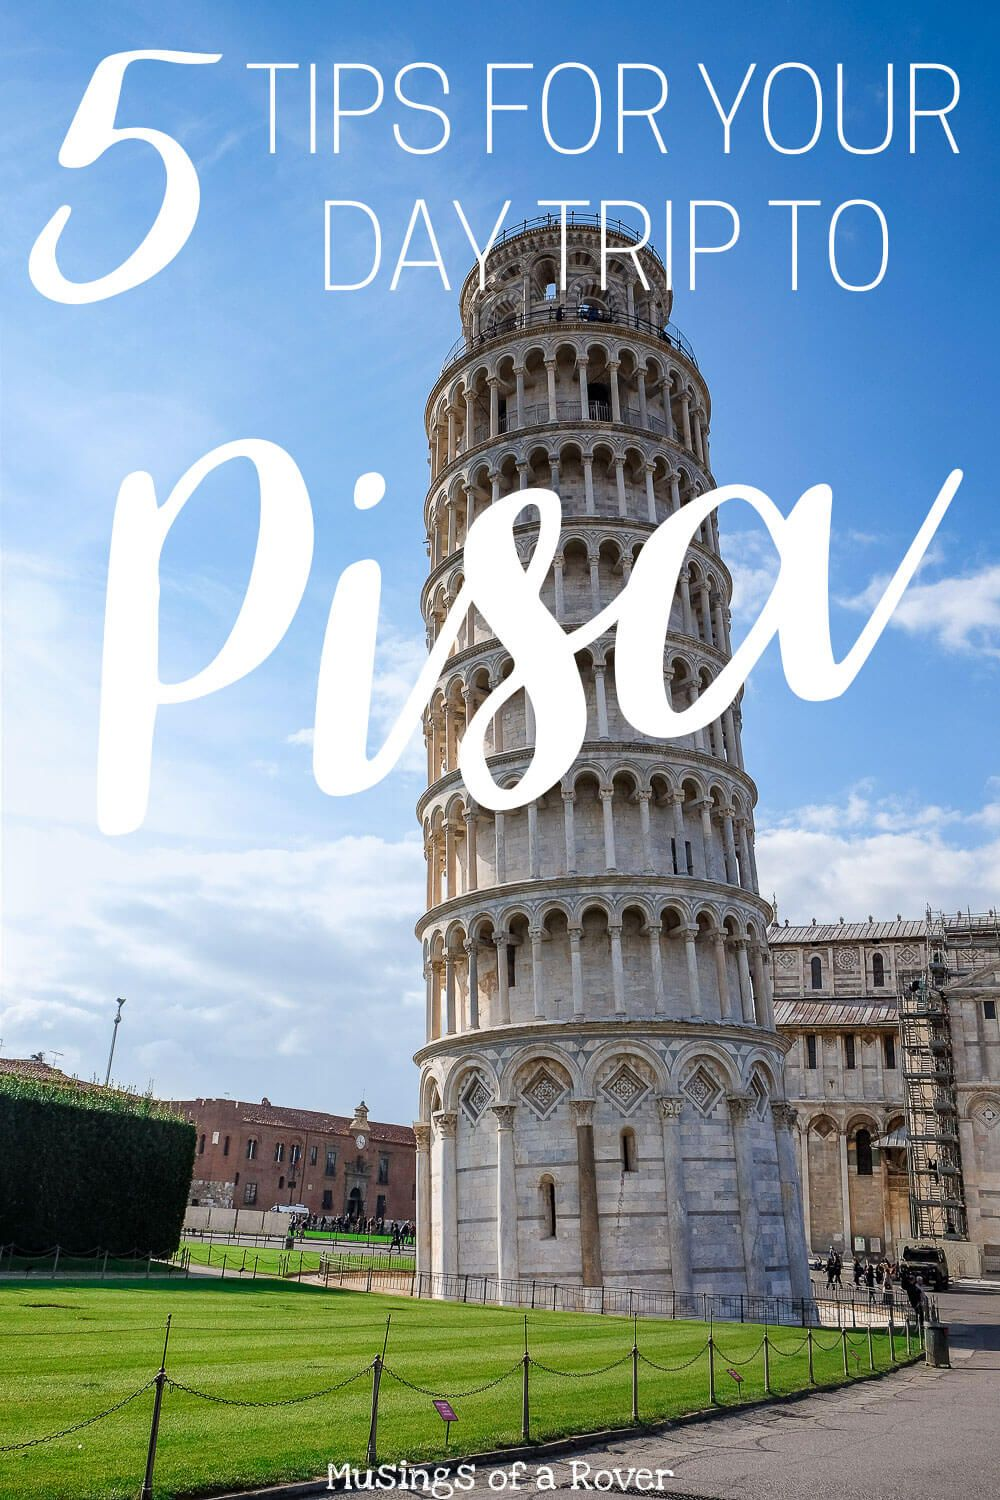 Want to see the leaning tower of pisa? Consider making a day trip out of it! It's only about an hour from Florence and you can easily go for just the day. Here are 5 tips to help you prepare for seeing this famous landmark! florence travel tips, italy travel tips, italy things to do, florence things to do, italy guide, florence guide, italy travel advice, florence travel advice, pisa travel tips, pisa things to do, leaning tower of pisa